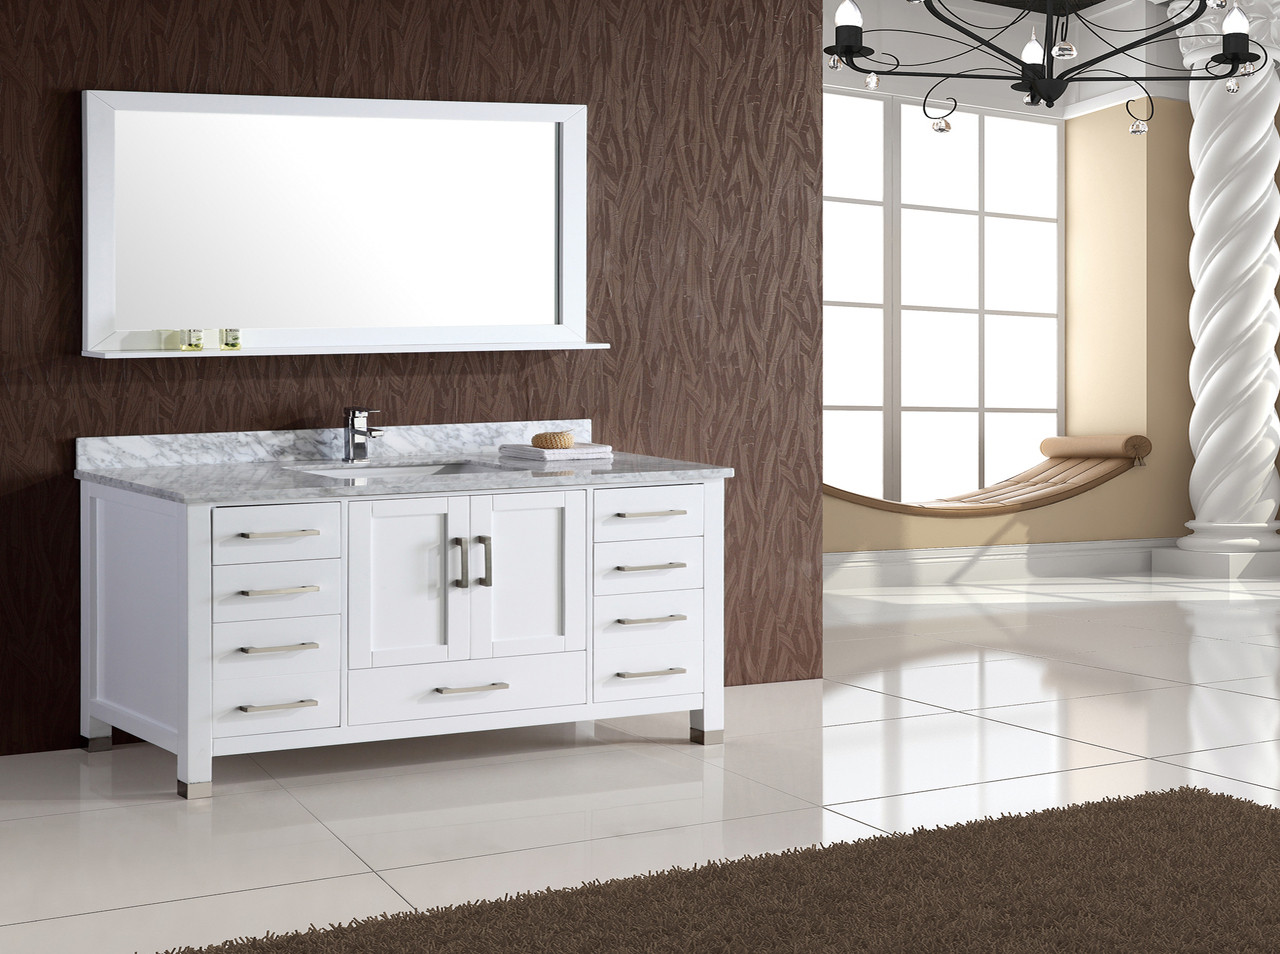 sink in double design london matching bathroom two with set white element linen w cabinet vanity